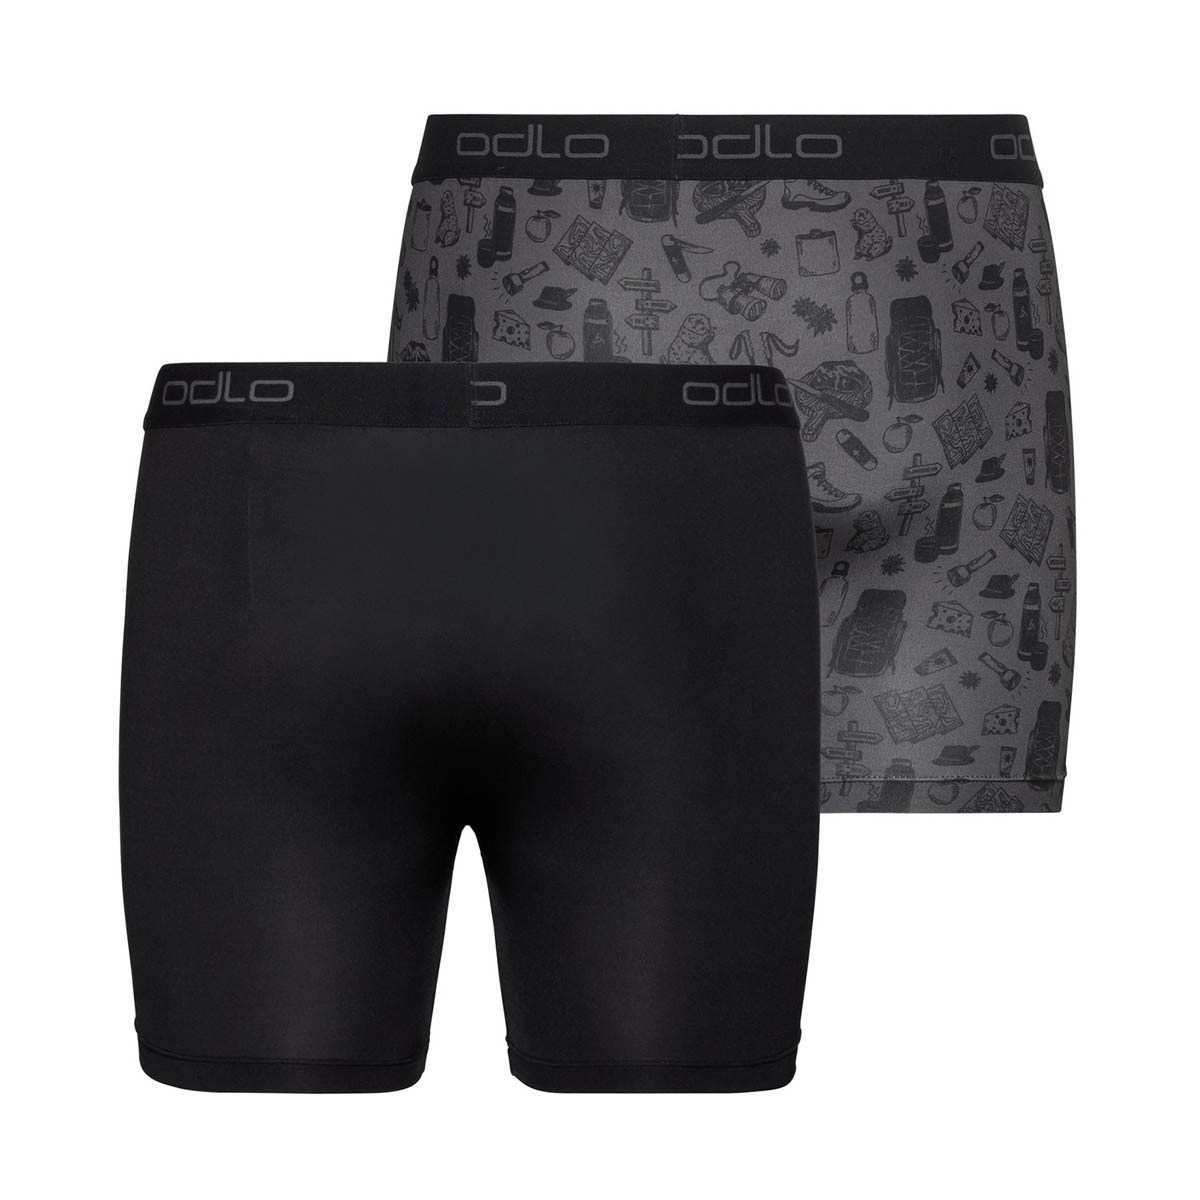 ODLO - ACTIVE EVERYDAY BOXER (2 PACK)